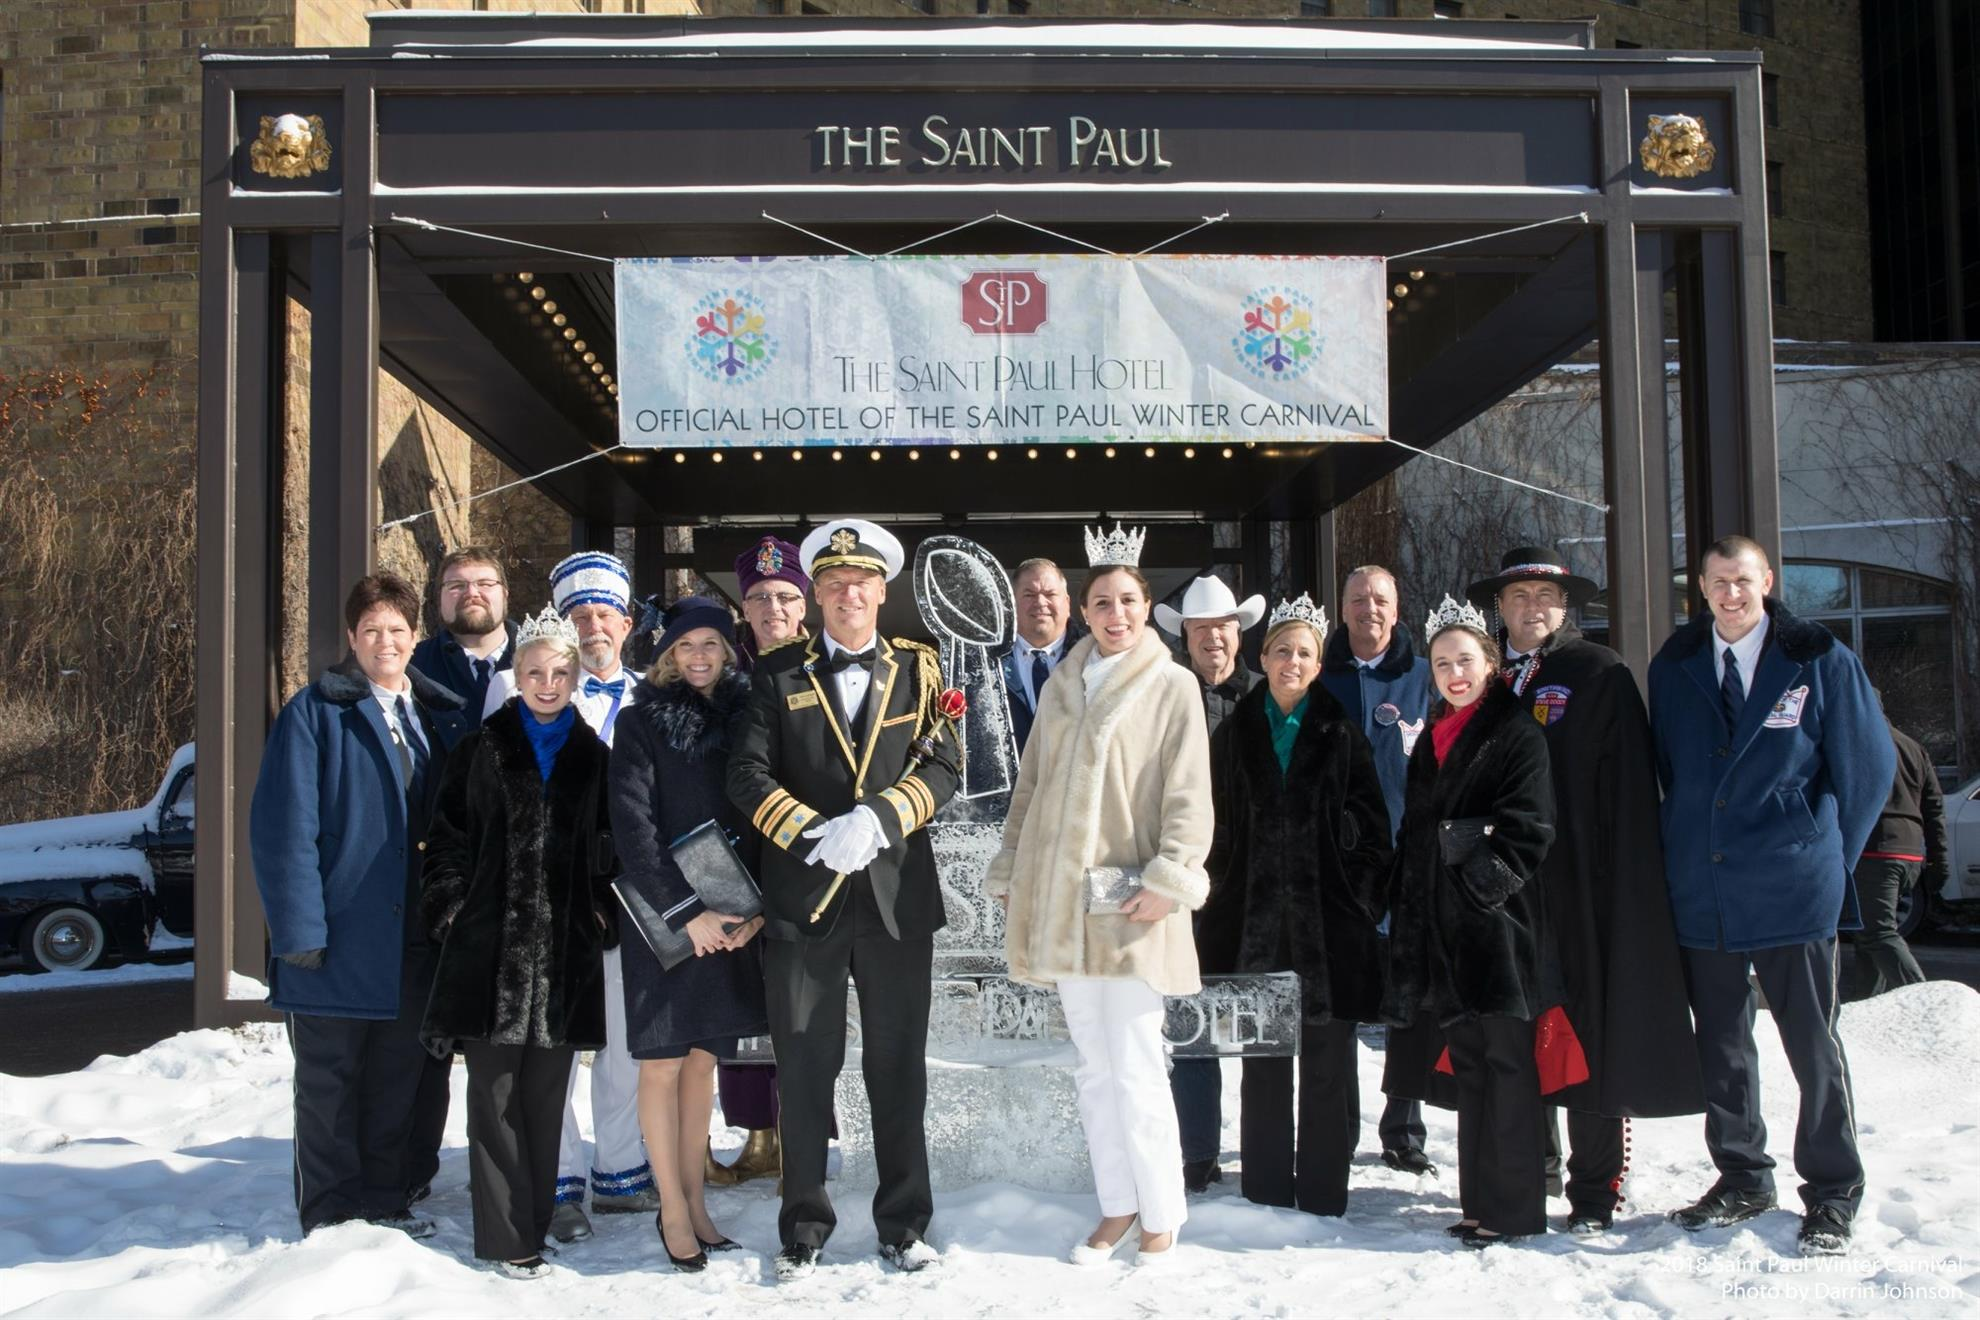 1bdd118485 The 2018 St. Paul Winter Carnival Royal Family will be the program speakers  at the Thursday